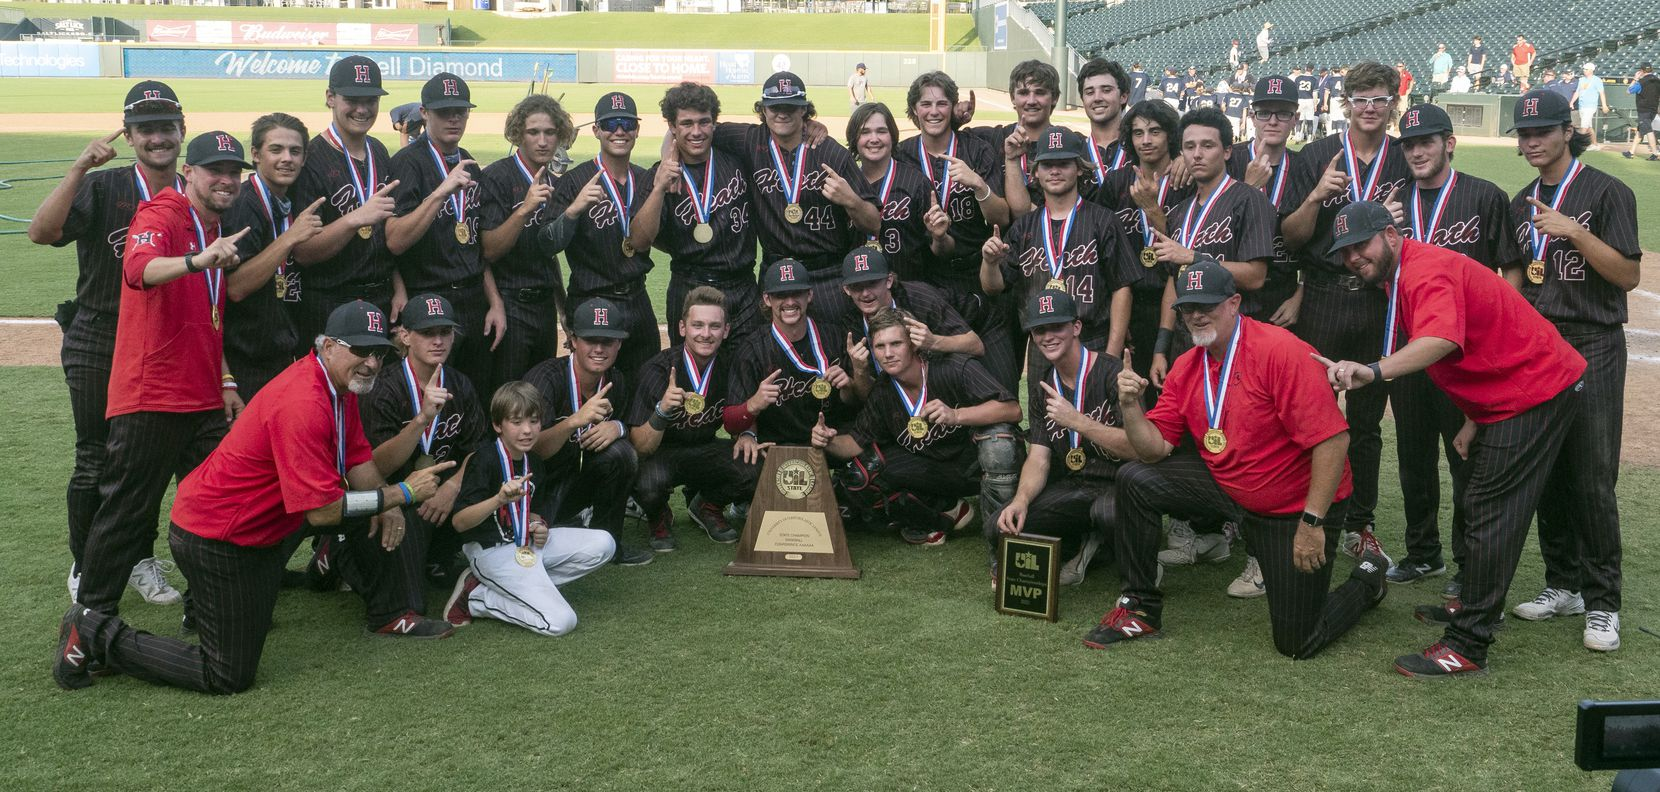 Rockwall-Heath gets a team photo taken with the UIL state trophy after defeating Keller in the 2021 UIL 6A state baseball final held, Saturday, June 12, 2021, in Round Rock, Texas.  Rockwall-Heath defeated Keller 4-3.   (Rodolfo Gonzalez/Special Contributor)